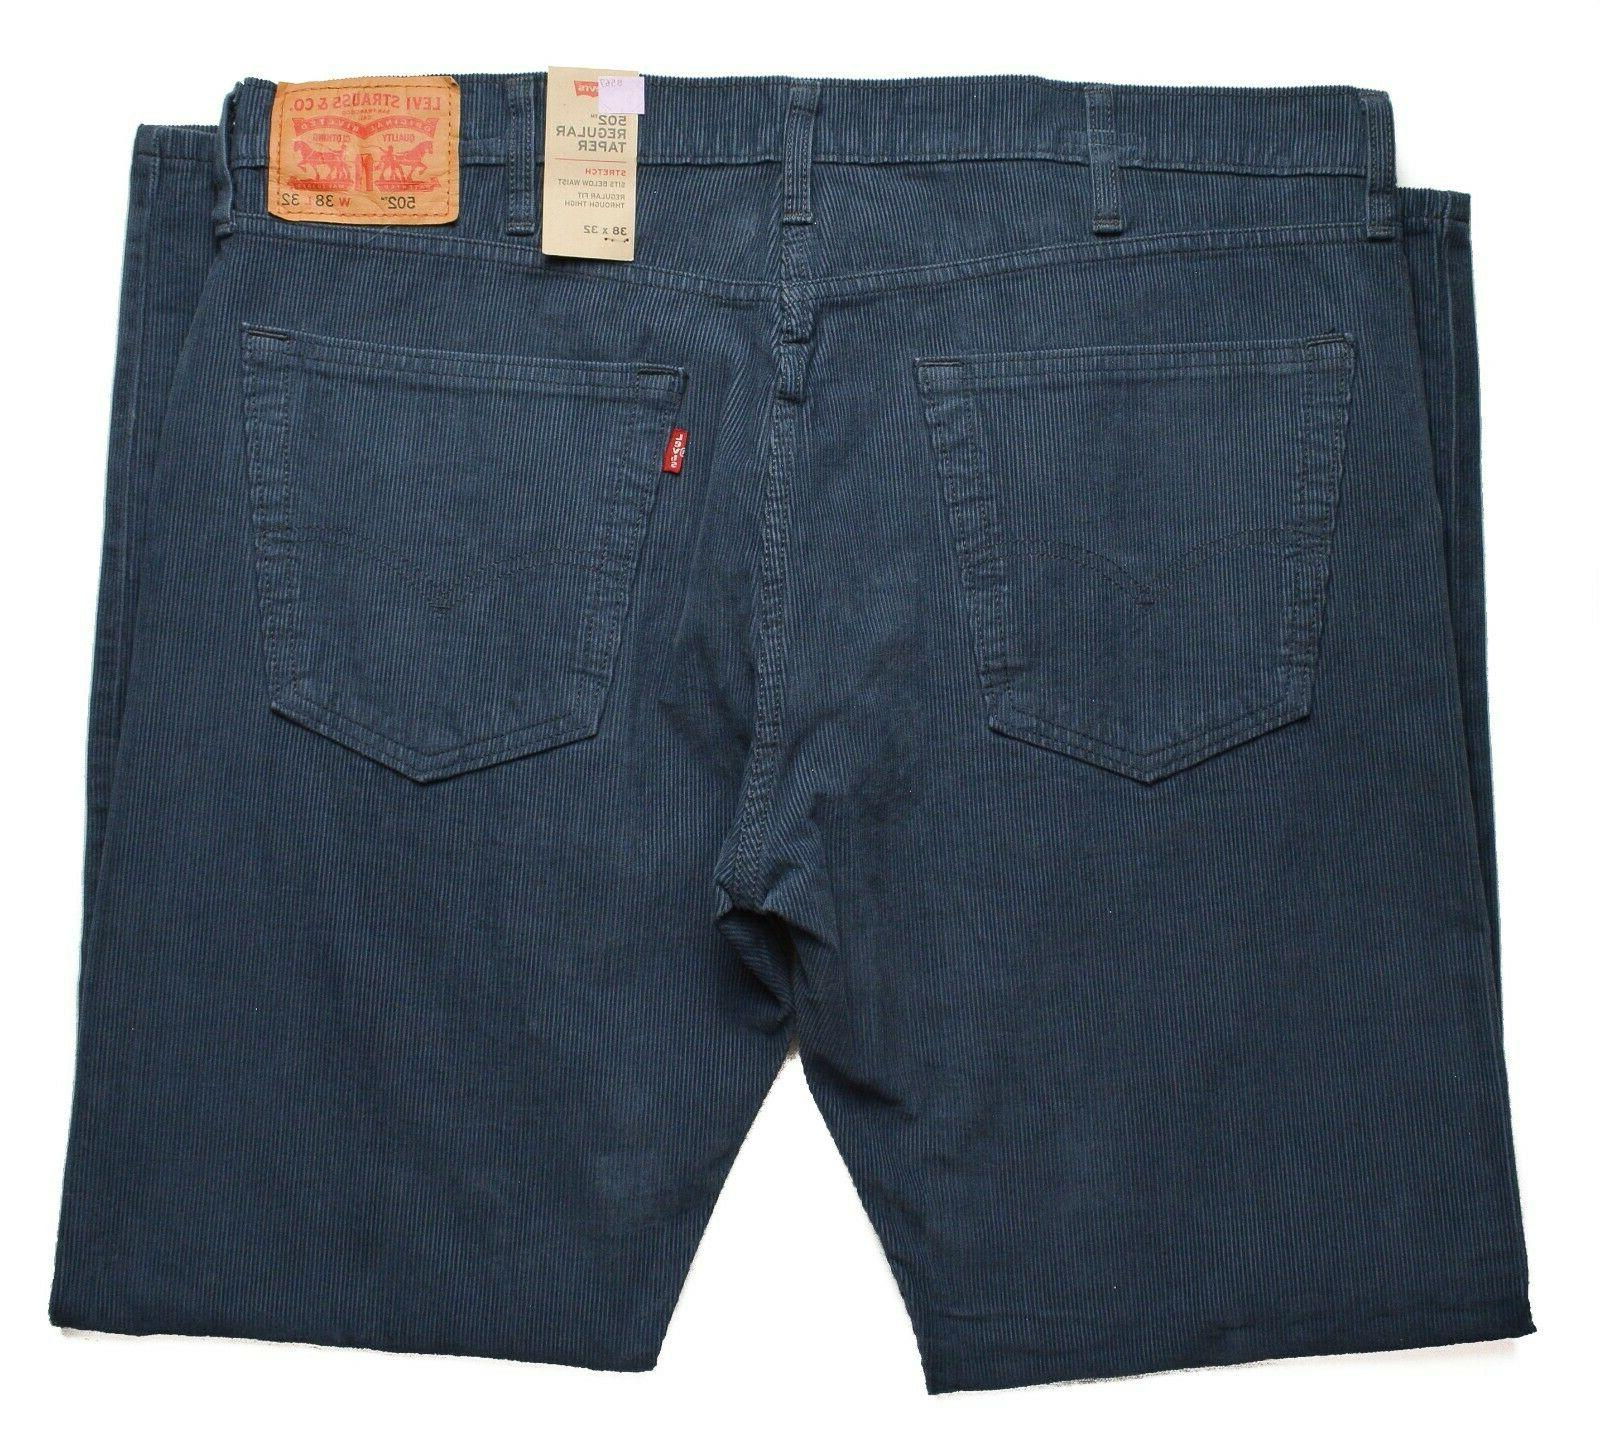 Levi's #8567 Size Regular 502